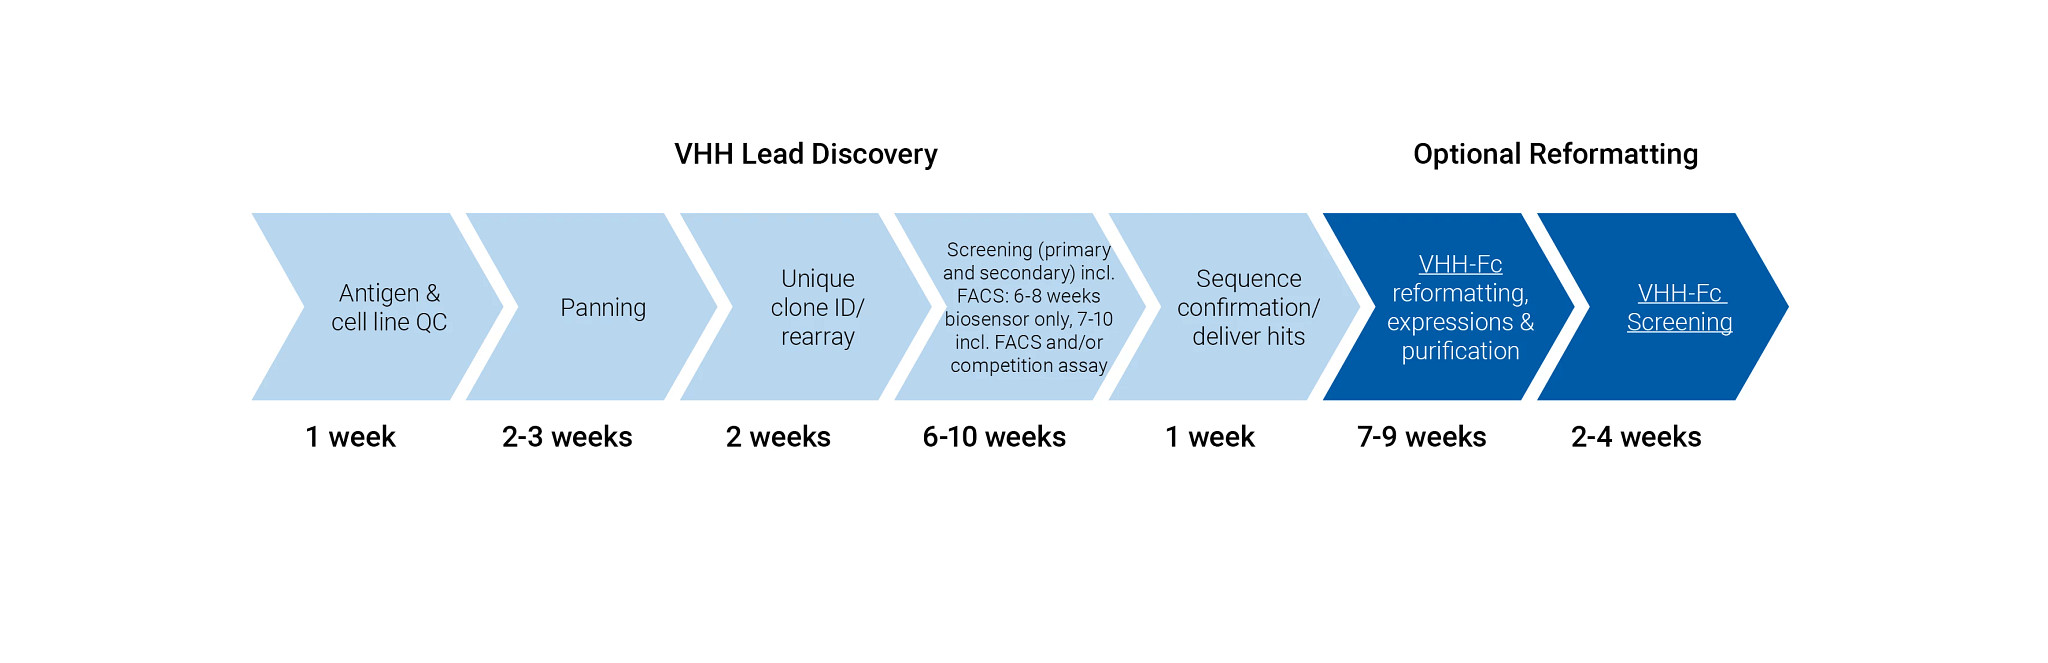 Typical workflows for the VHH Tungsten library includes reagent QC, panning, picking, sequencing, rearray, VHH screening, FACS cell binding, kinetics affinity, deliver hits, and optional reformatting.